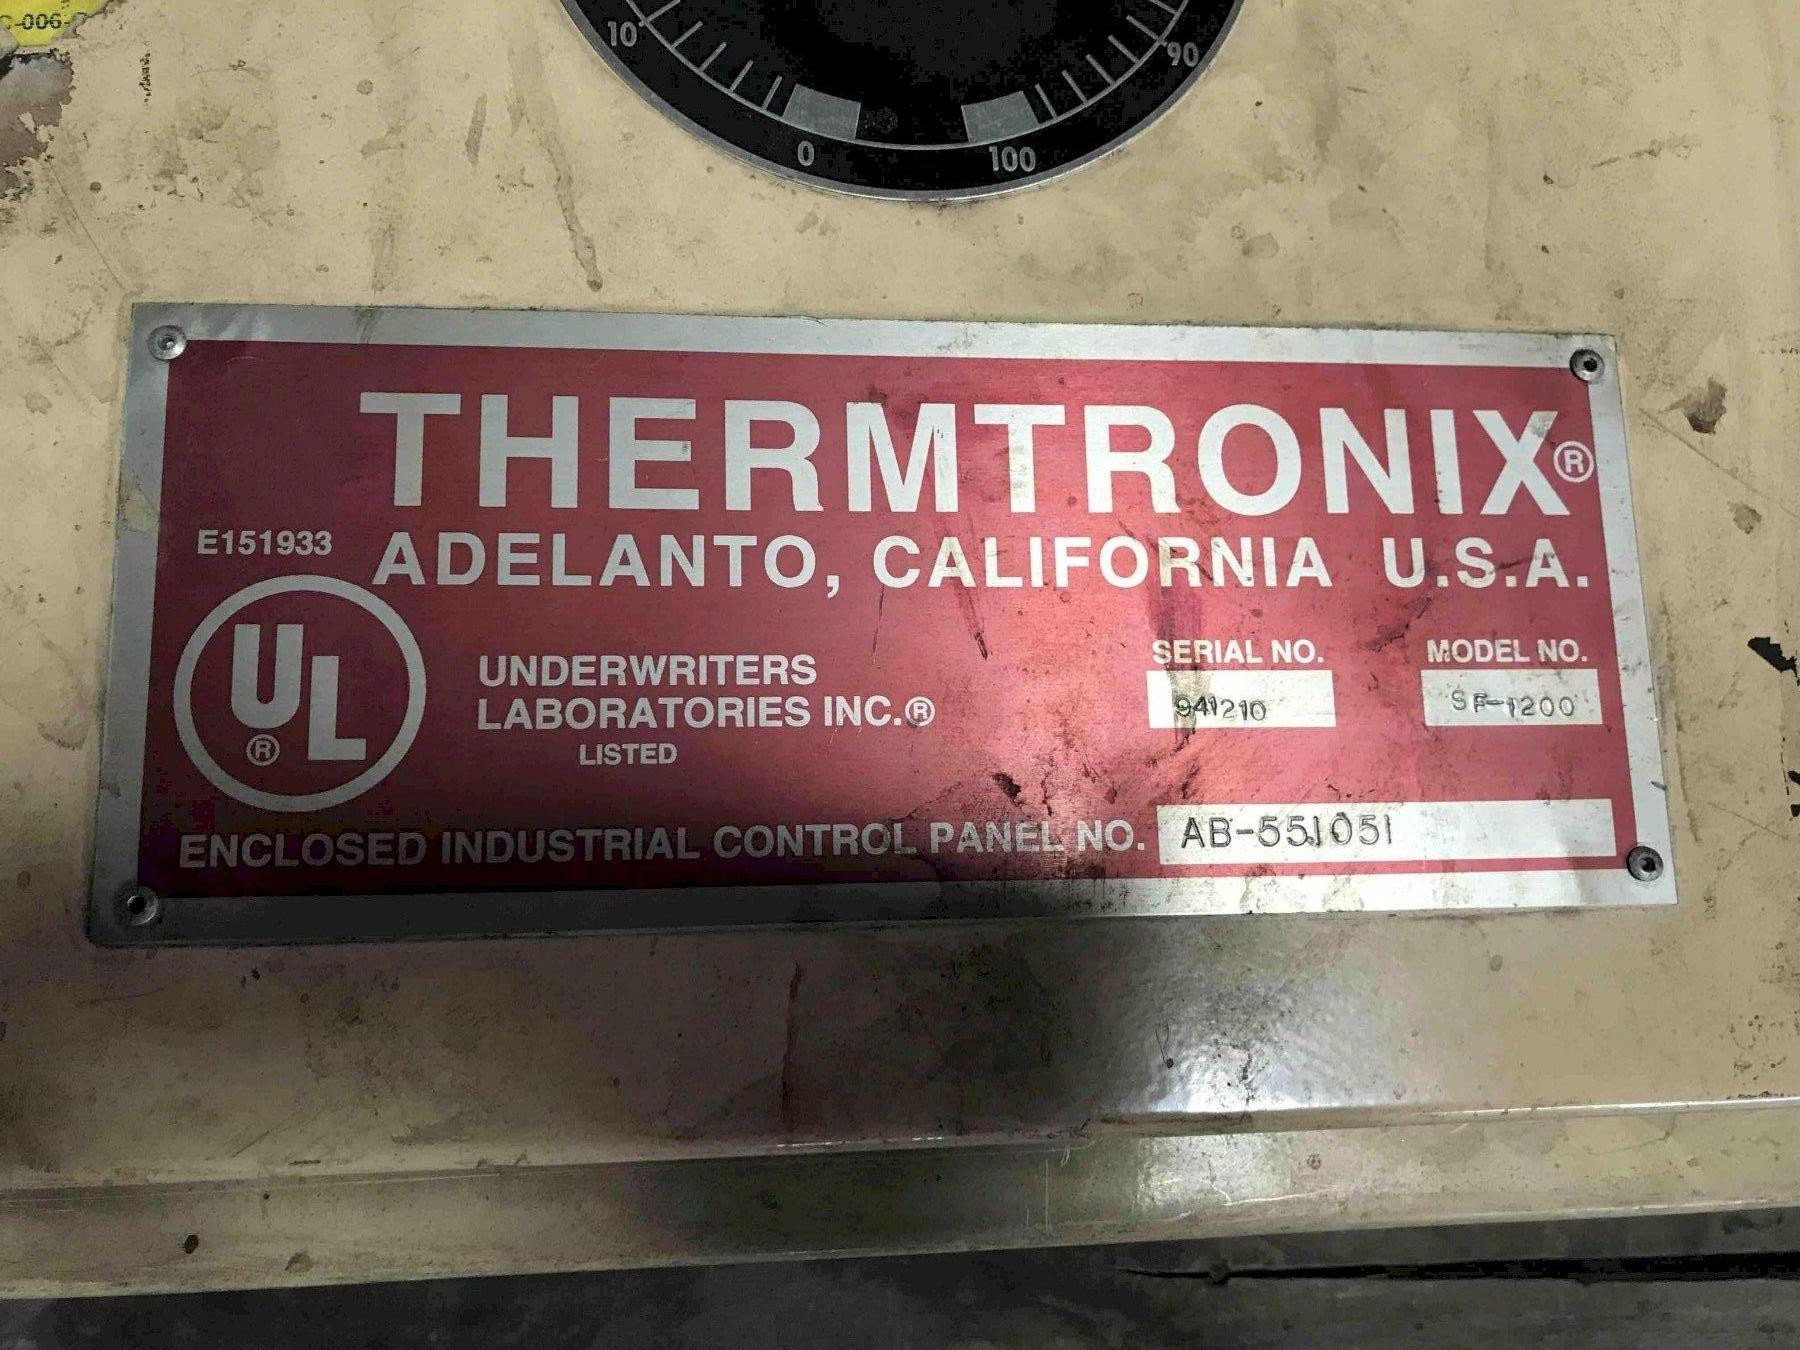 THERMTRONIX SF-1200 ELECTRIC RESISTANCE STATIONARY FURNACES WITH CONTROLS